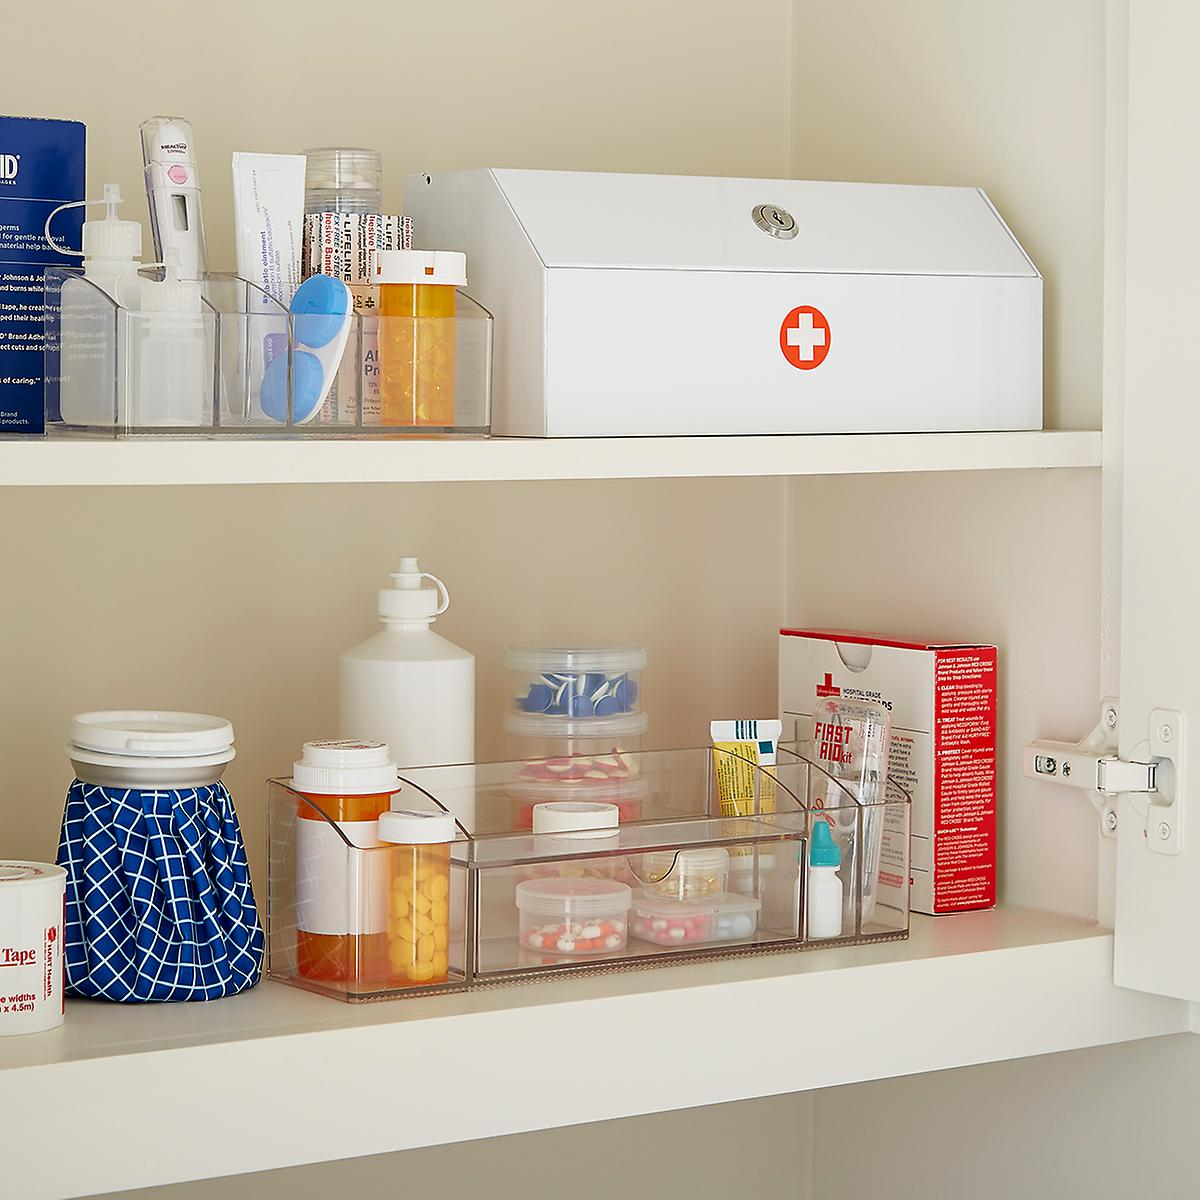 Bathroom cabinet organizers - Medicine Cabinet Organizer Roll Over To Zoom